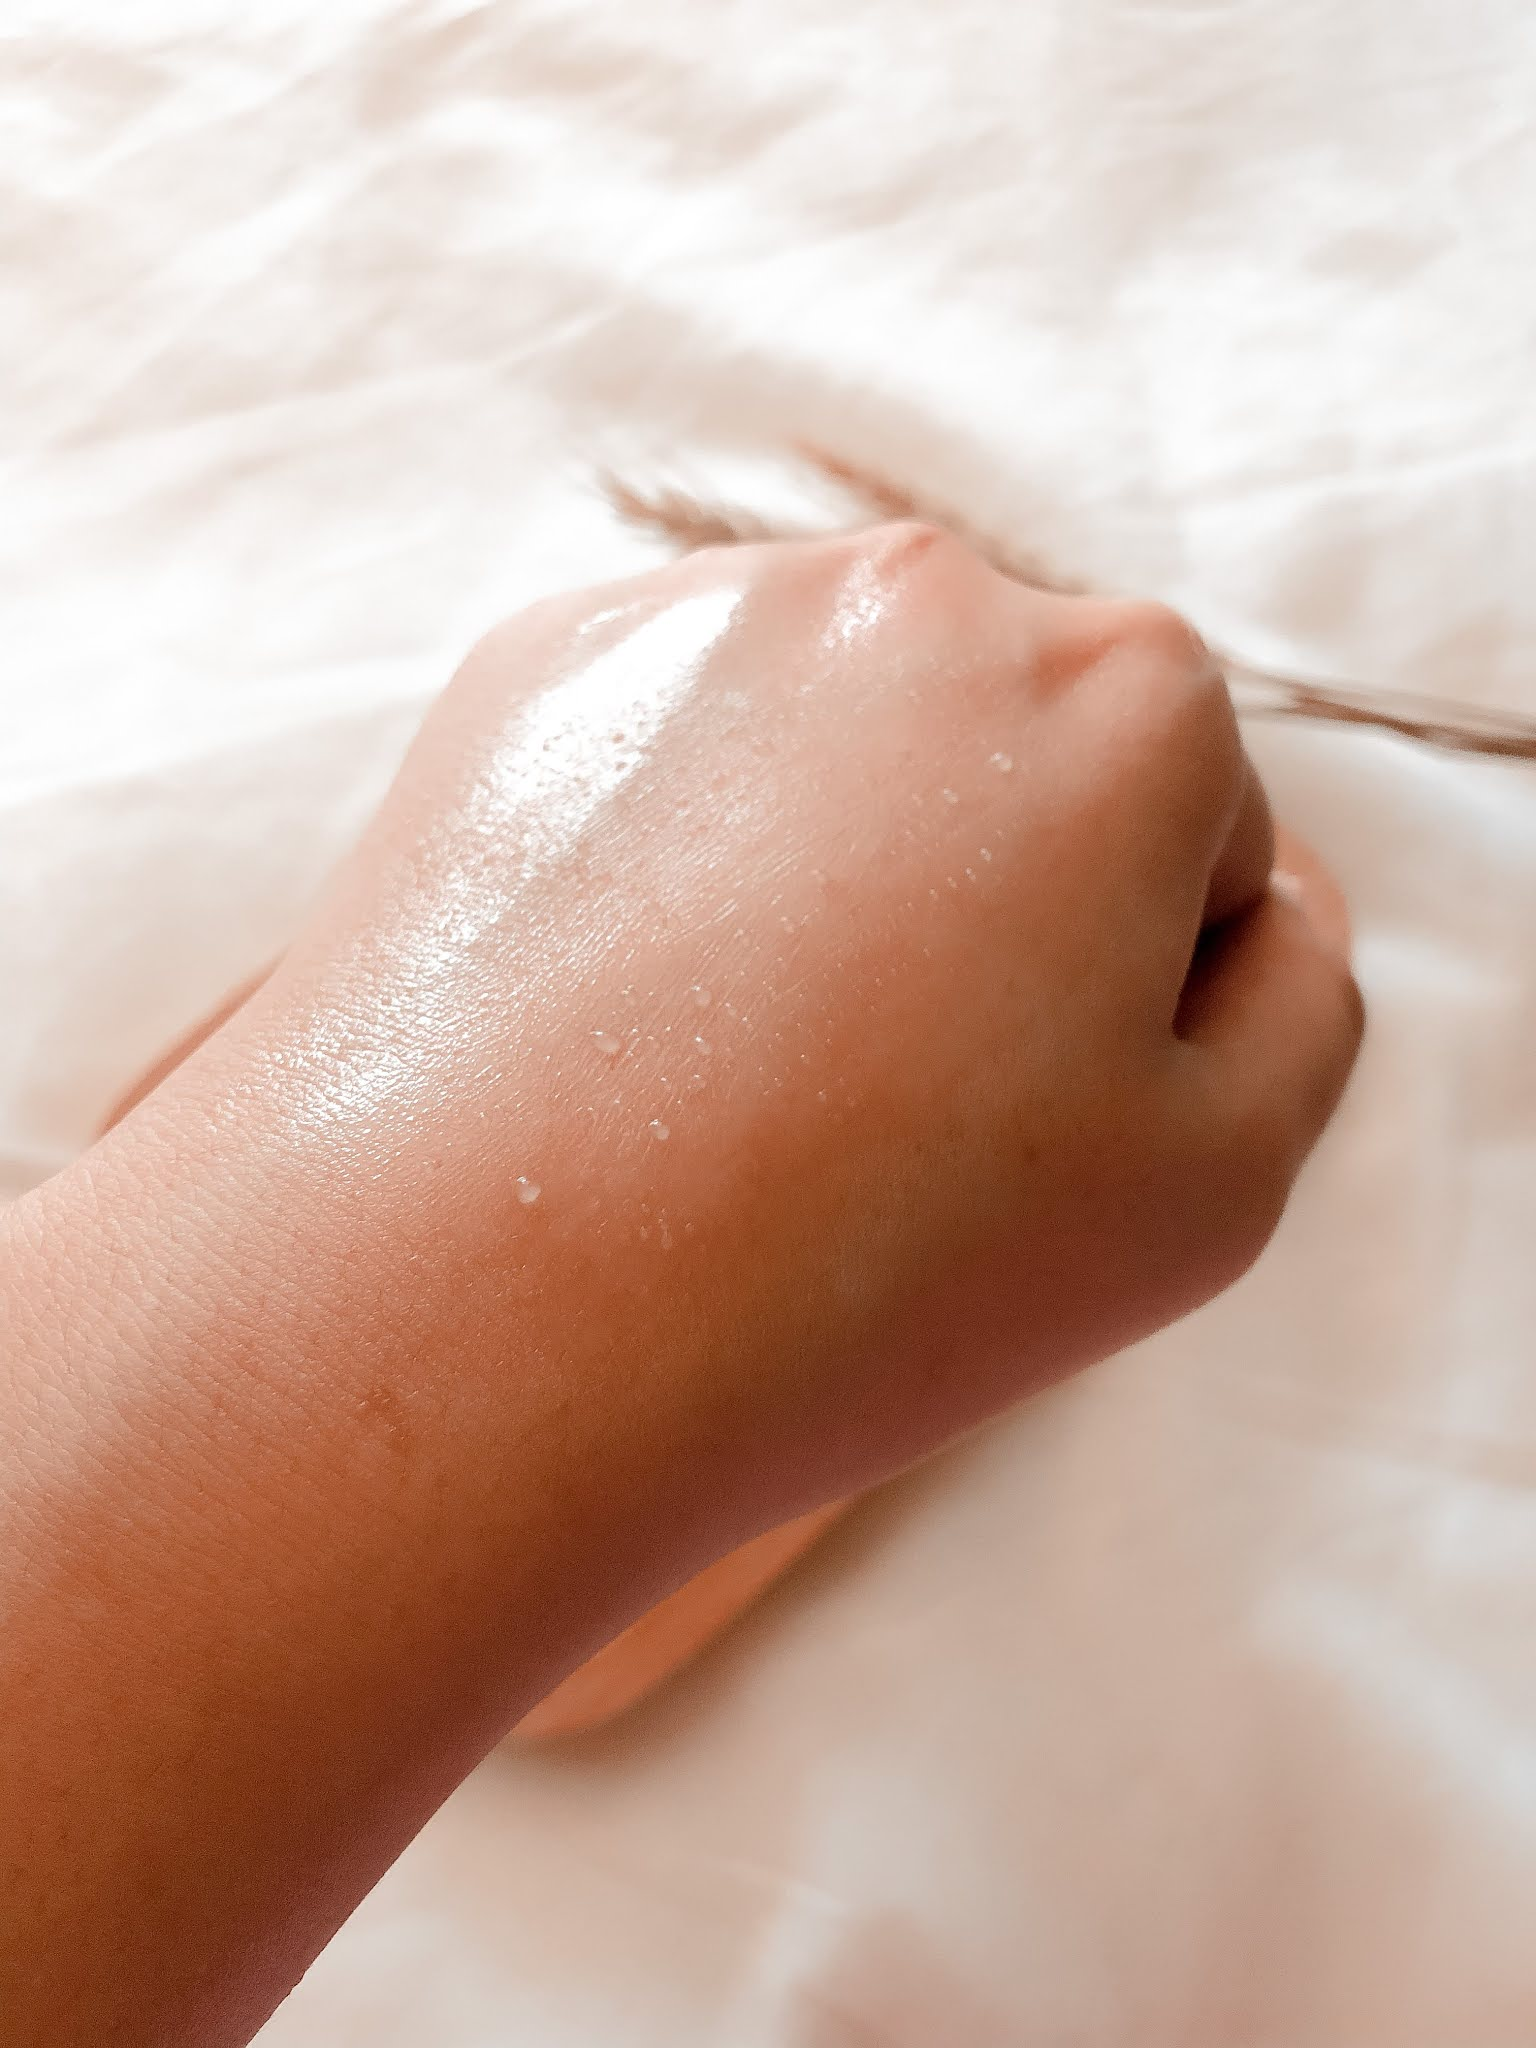 Dry and Dull Skin: Follow These 11 Steps To Rejuvenate It!